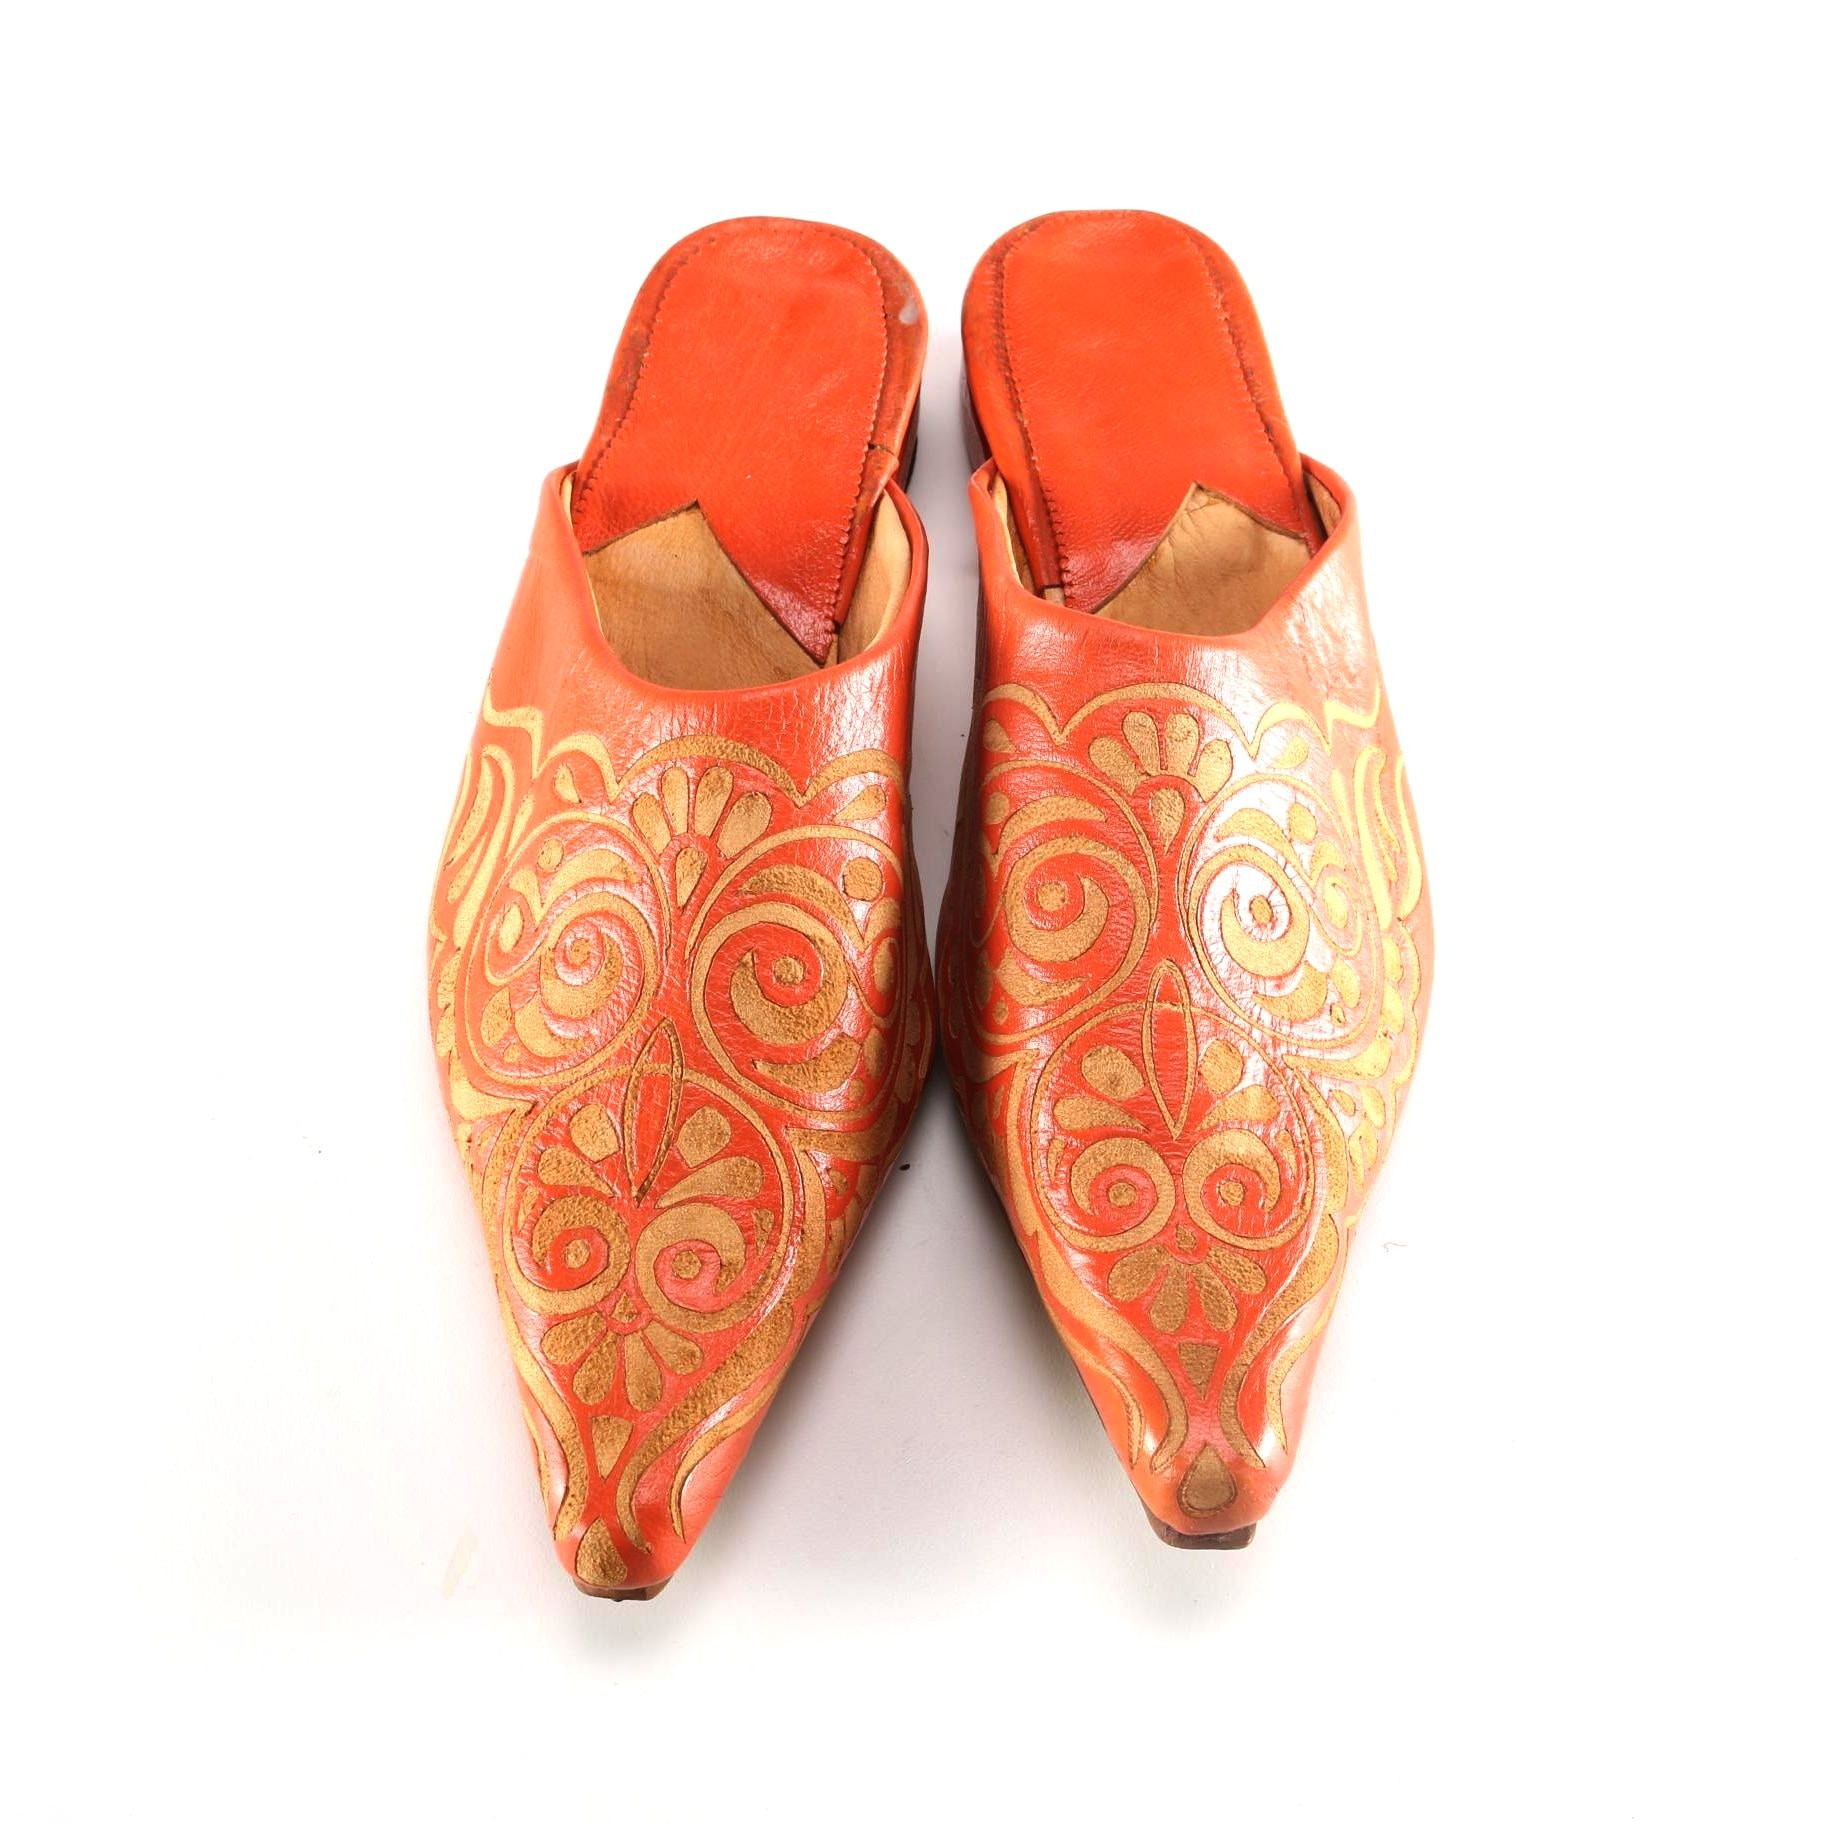 Pair of Moroccan Shoes